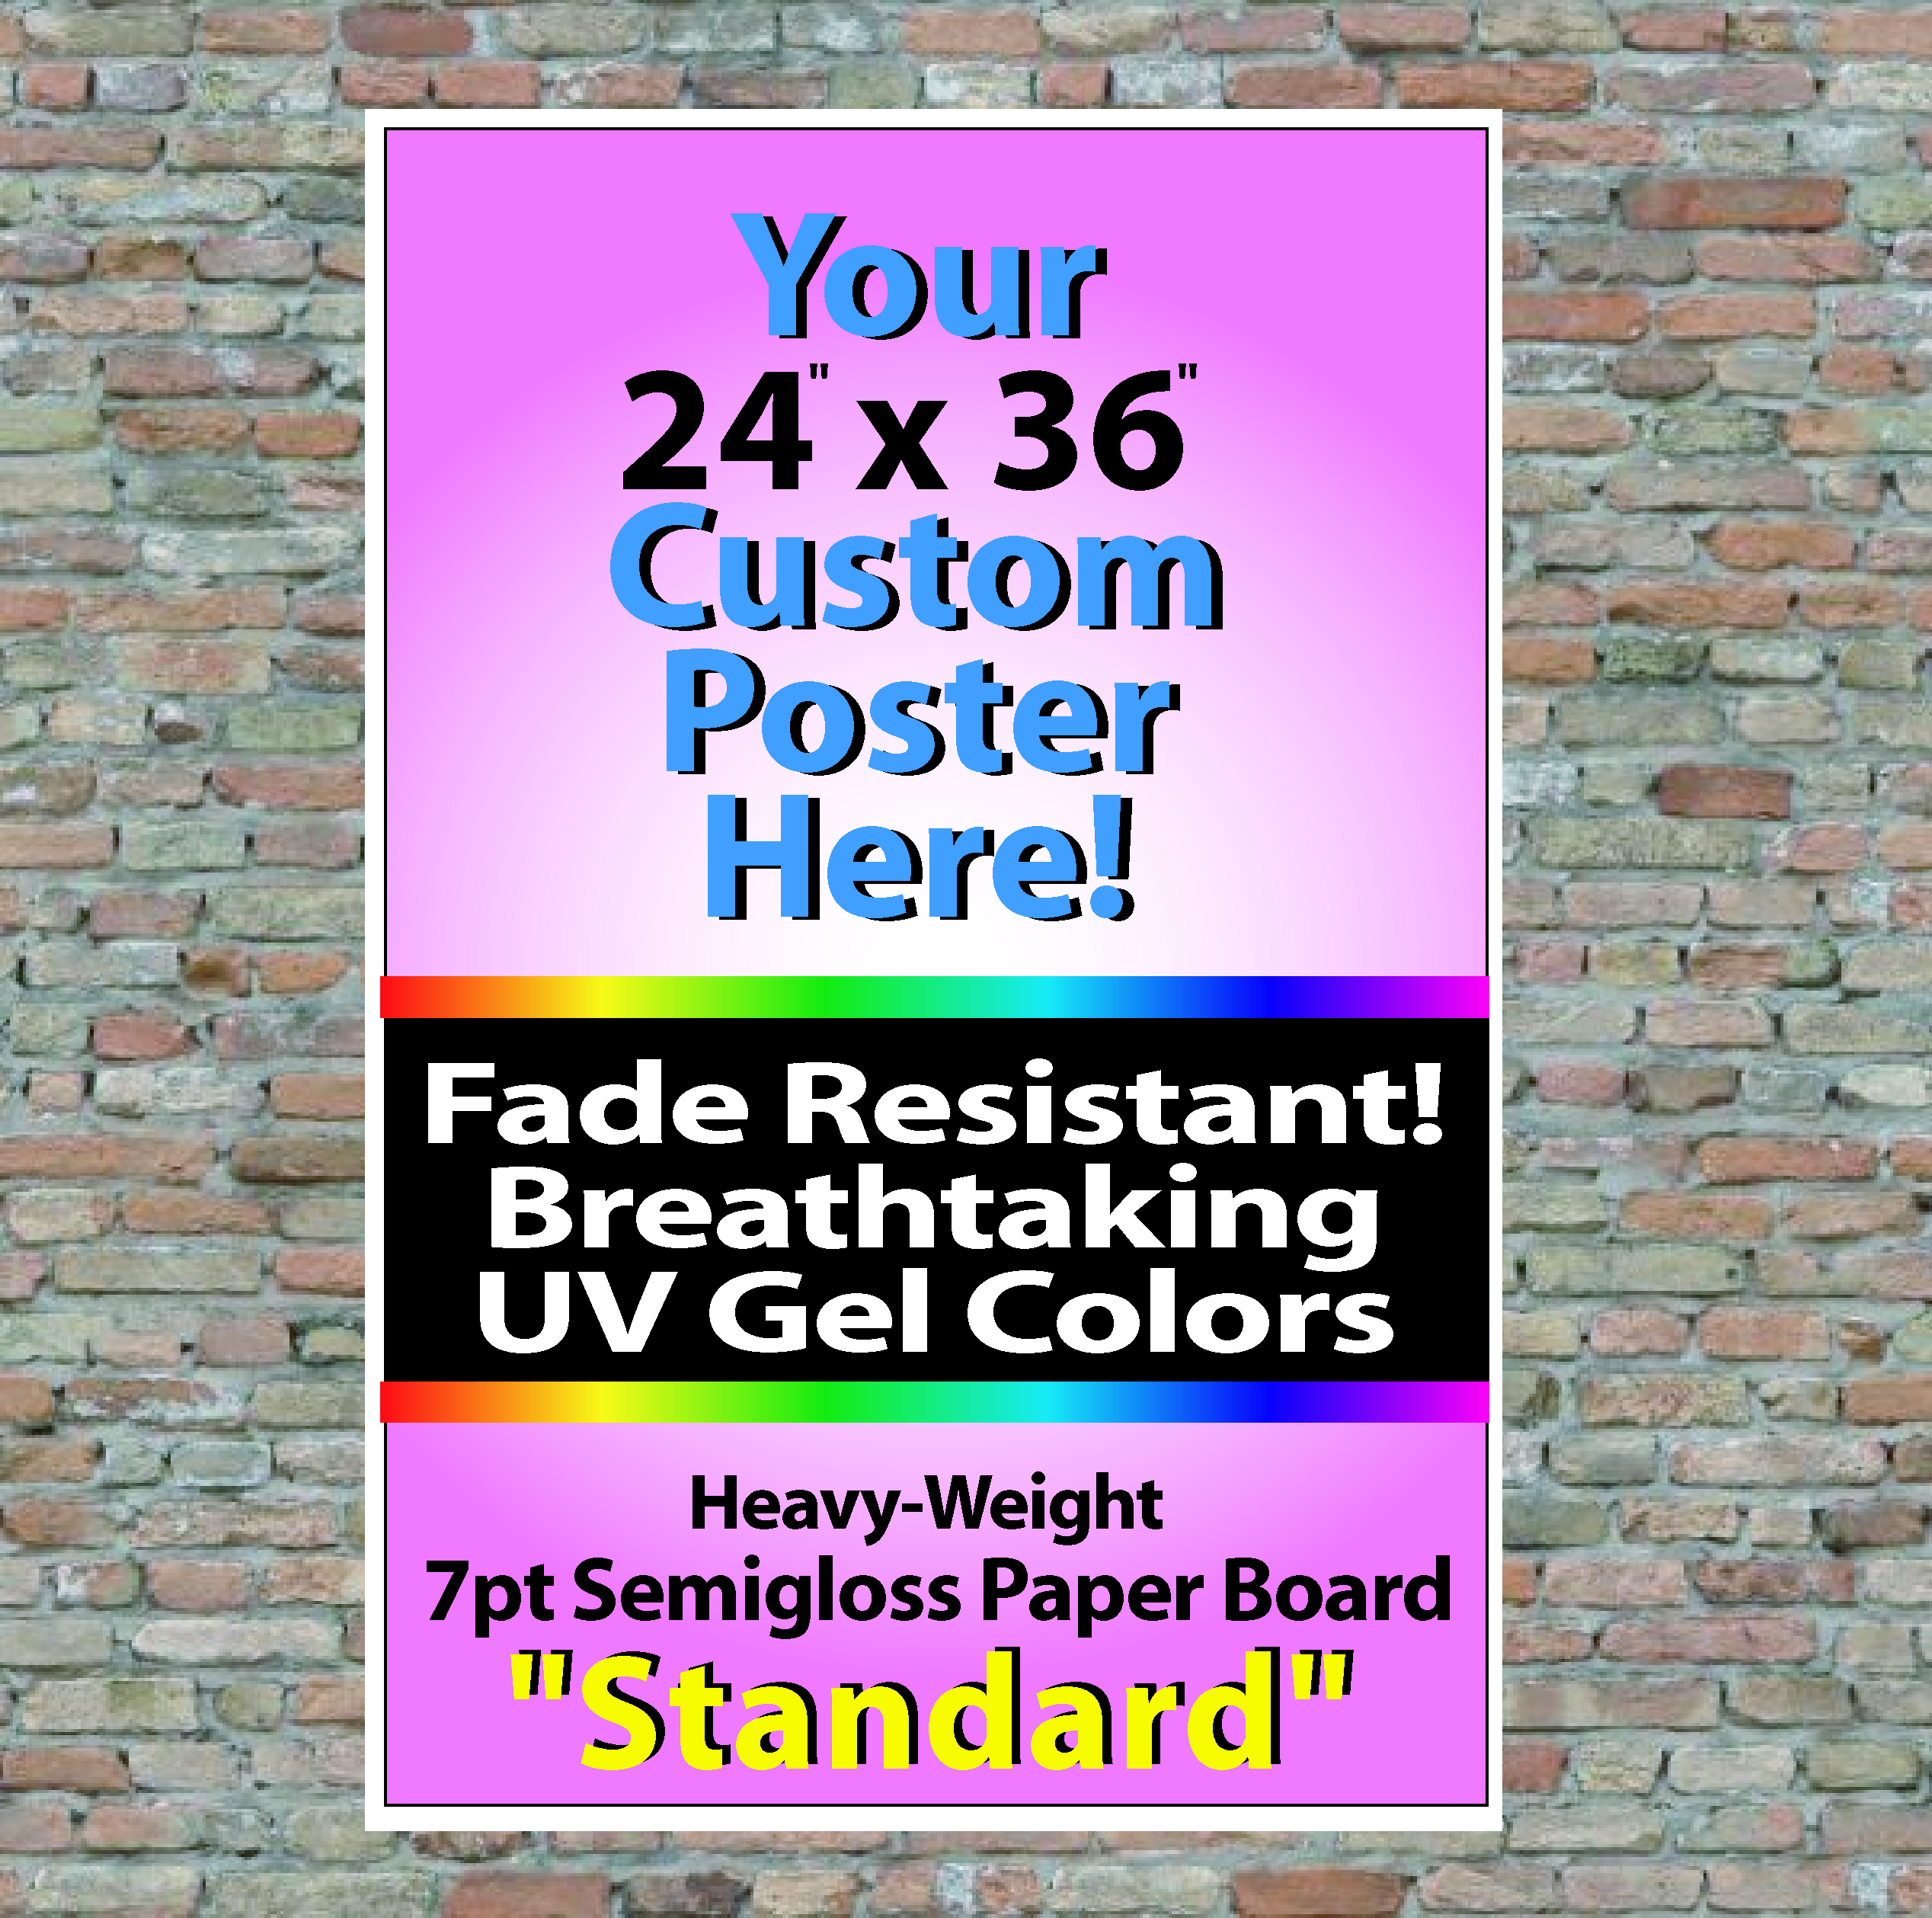 24 x 36 wall posters practical image